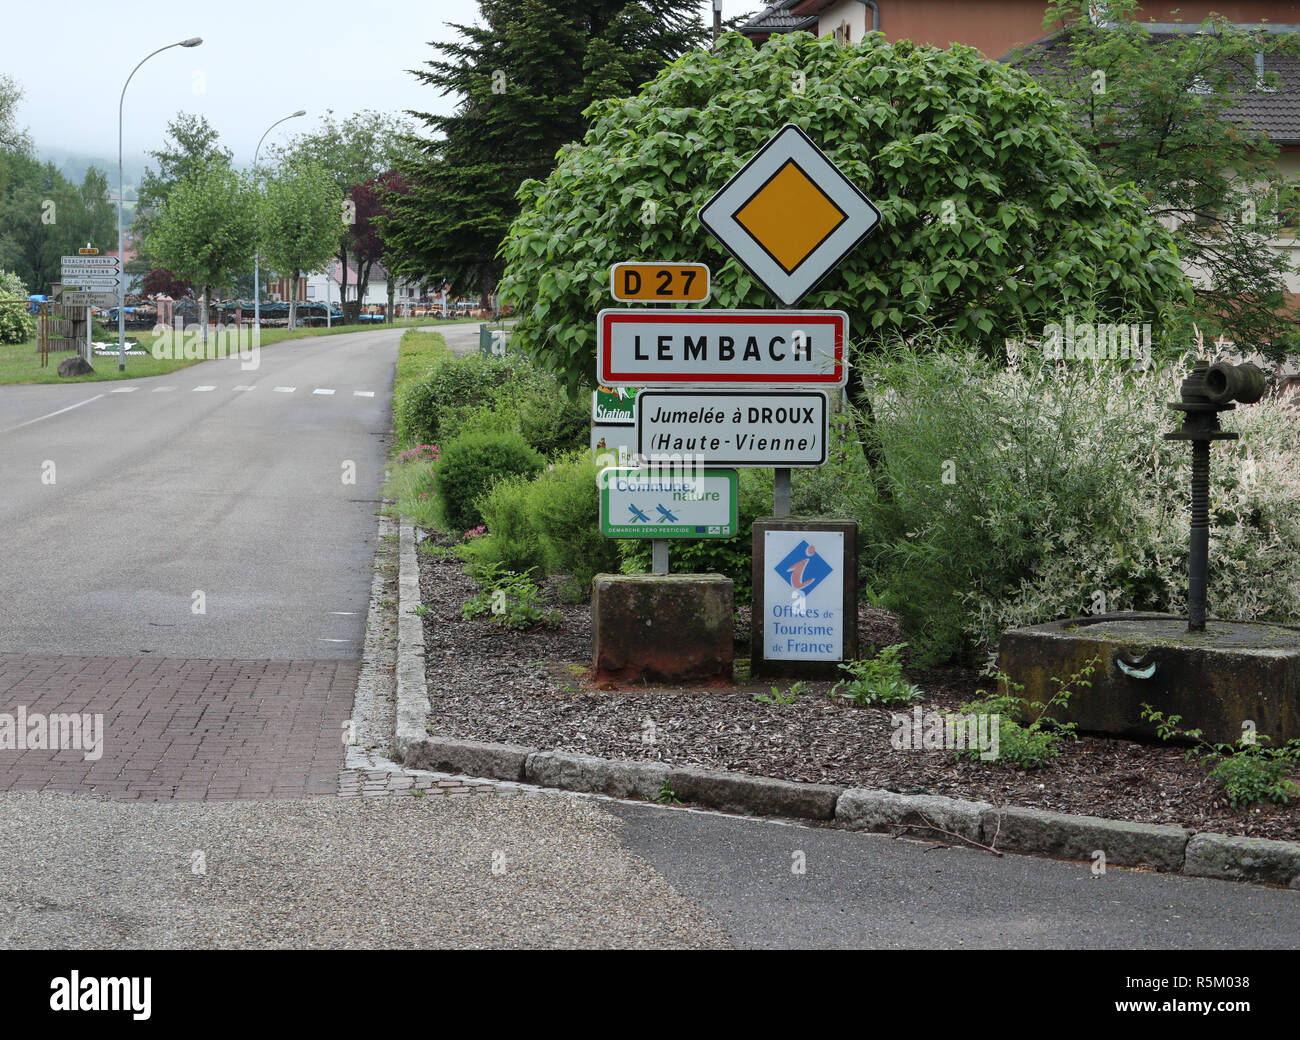 Entering Lembach France - Stock Image